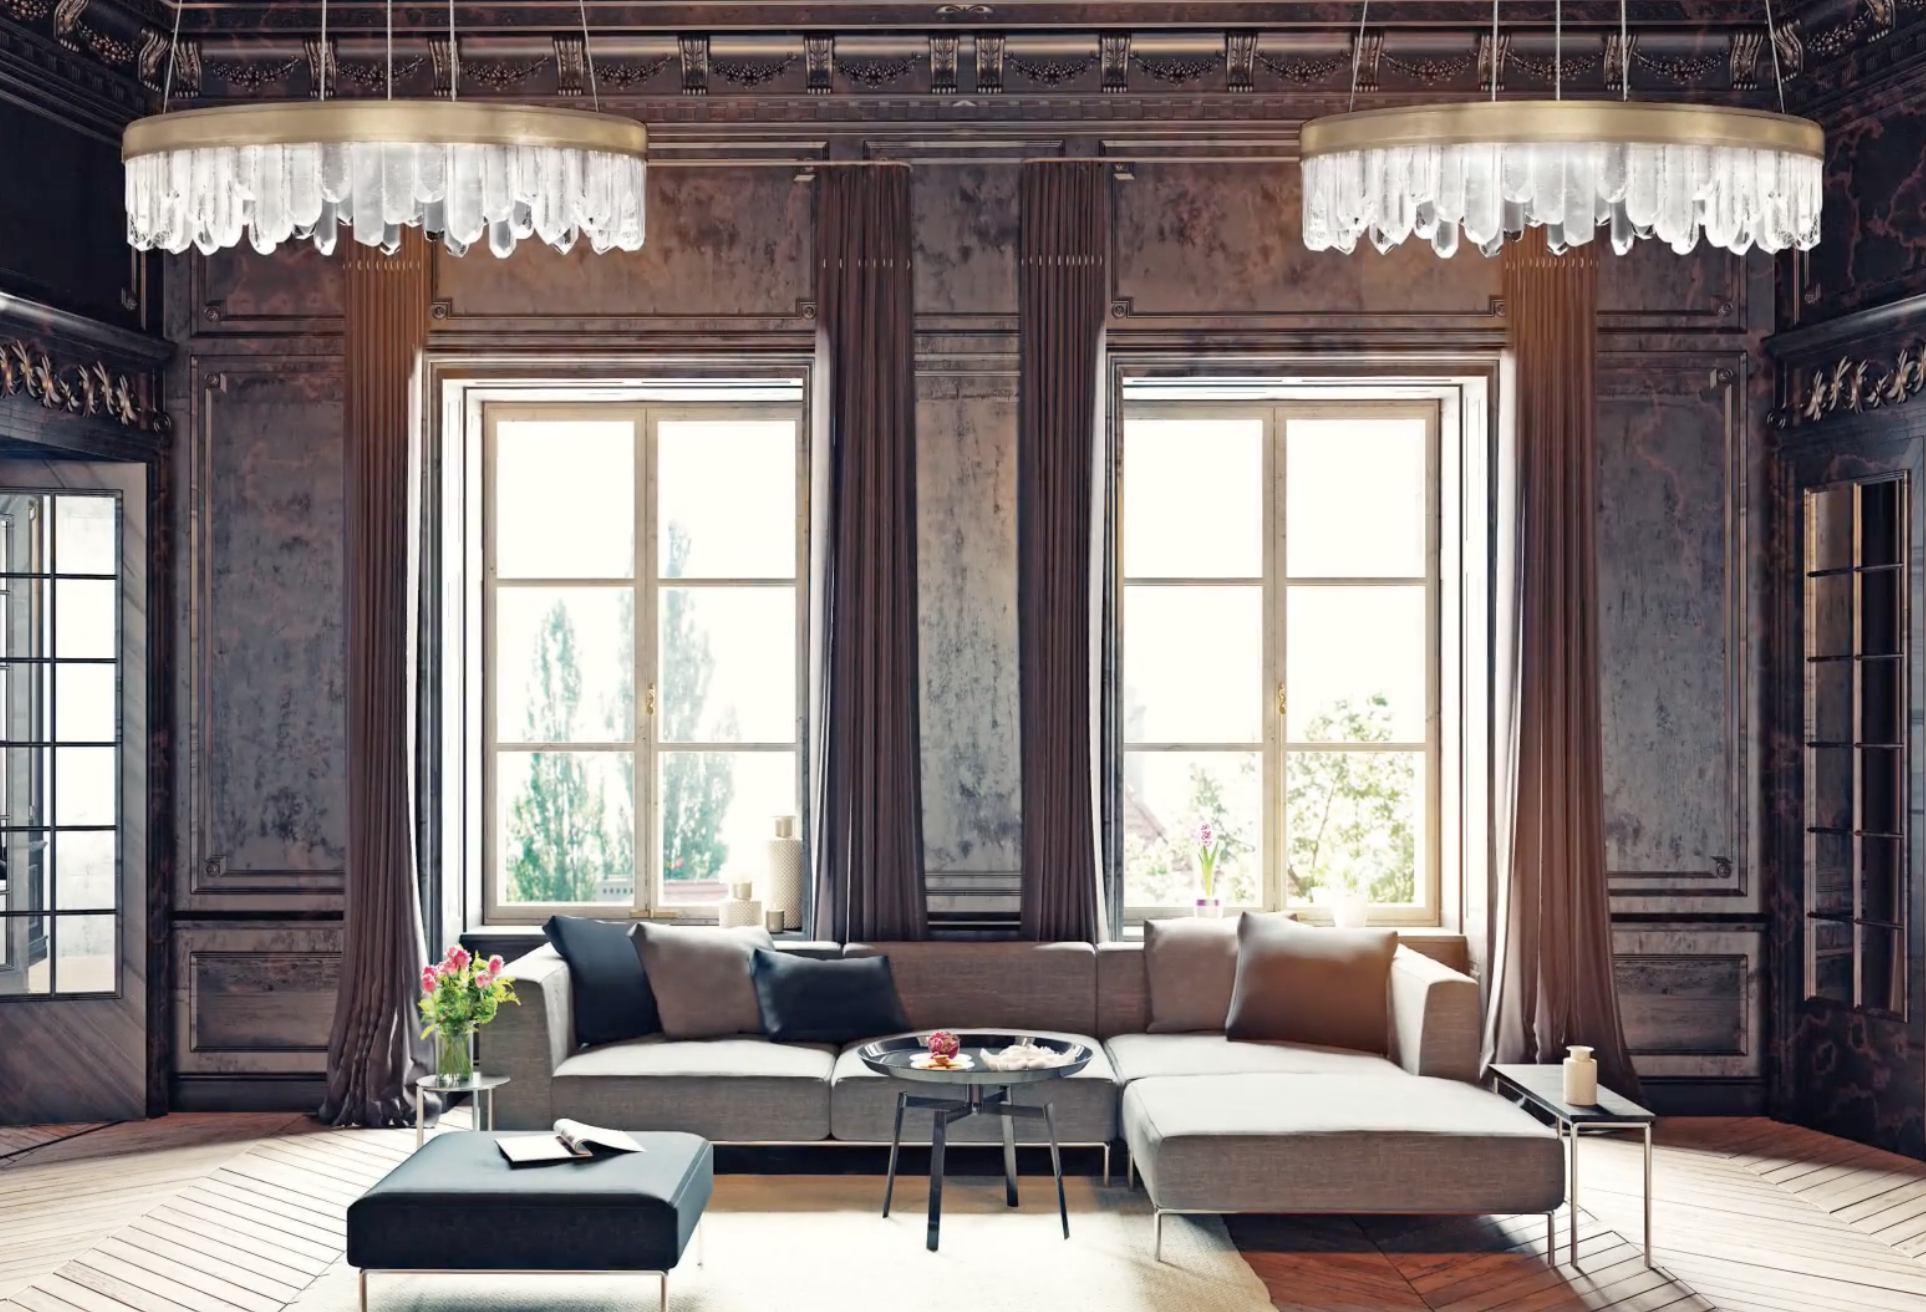 Our Advice on the Best Lighting for Your Home - Love, The Design Studio